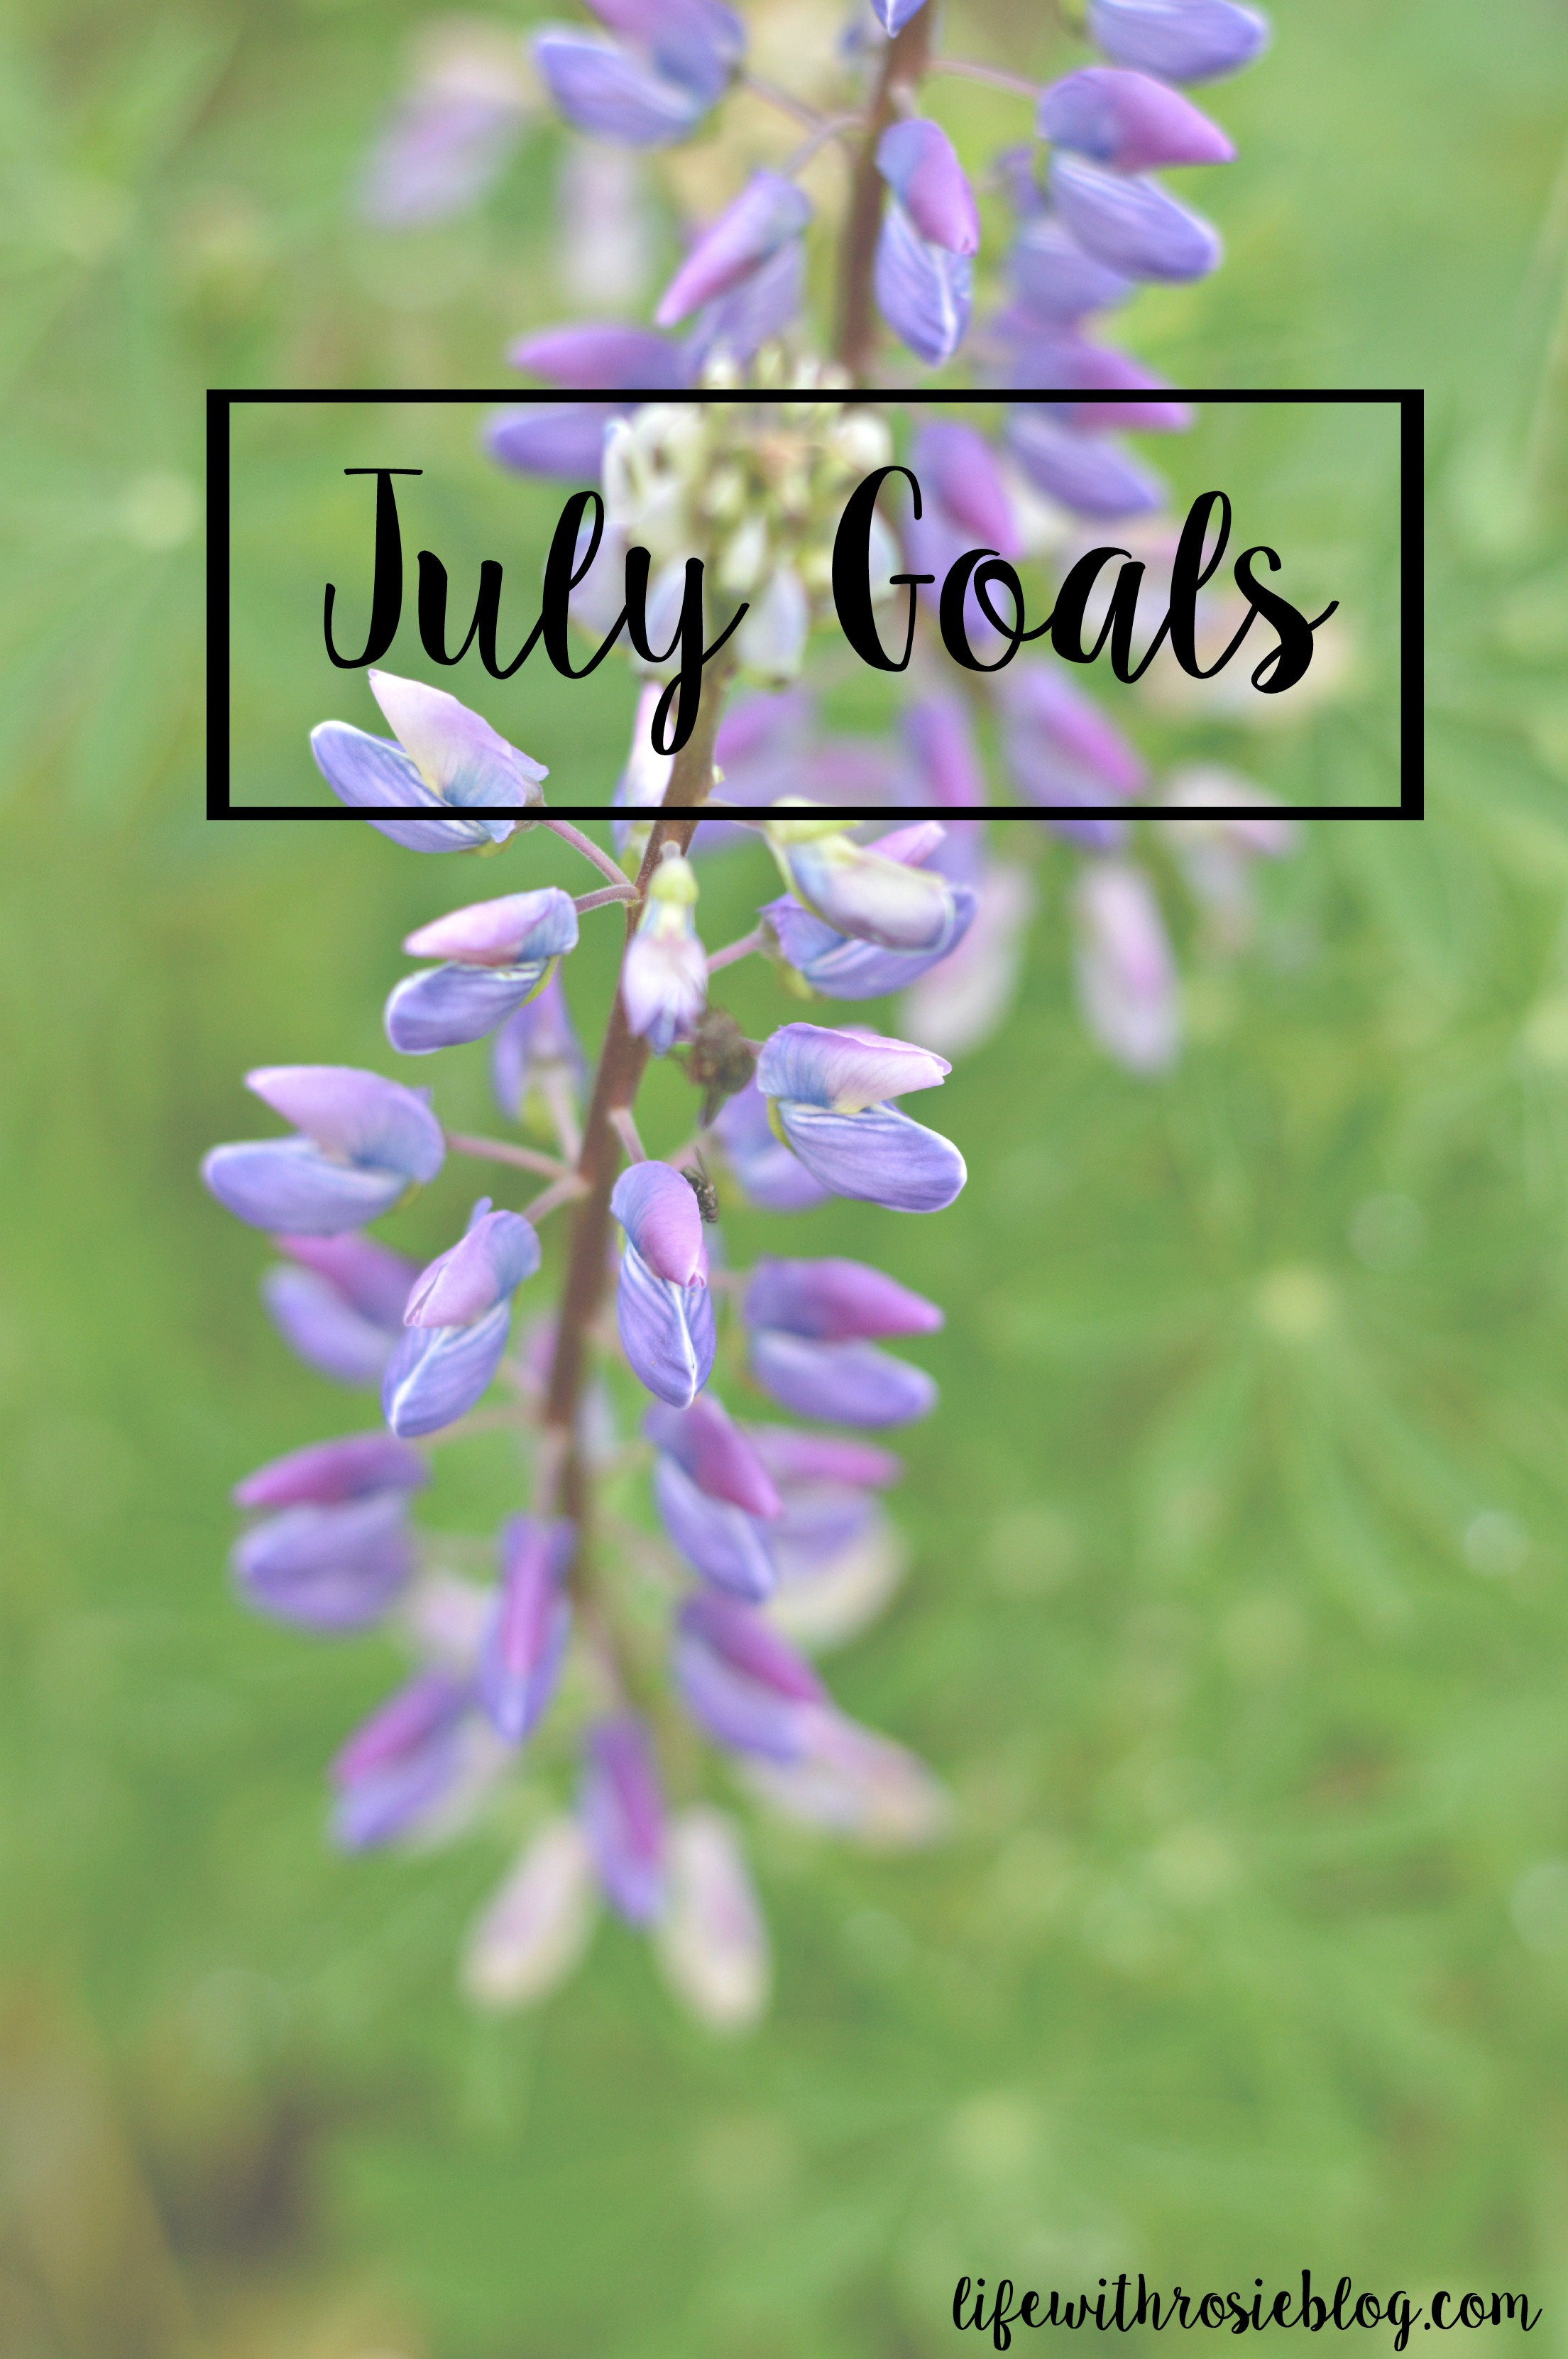 July Goals // Life with Rosie